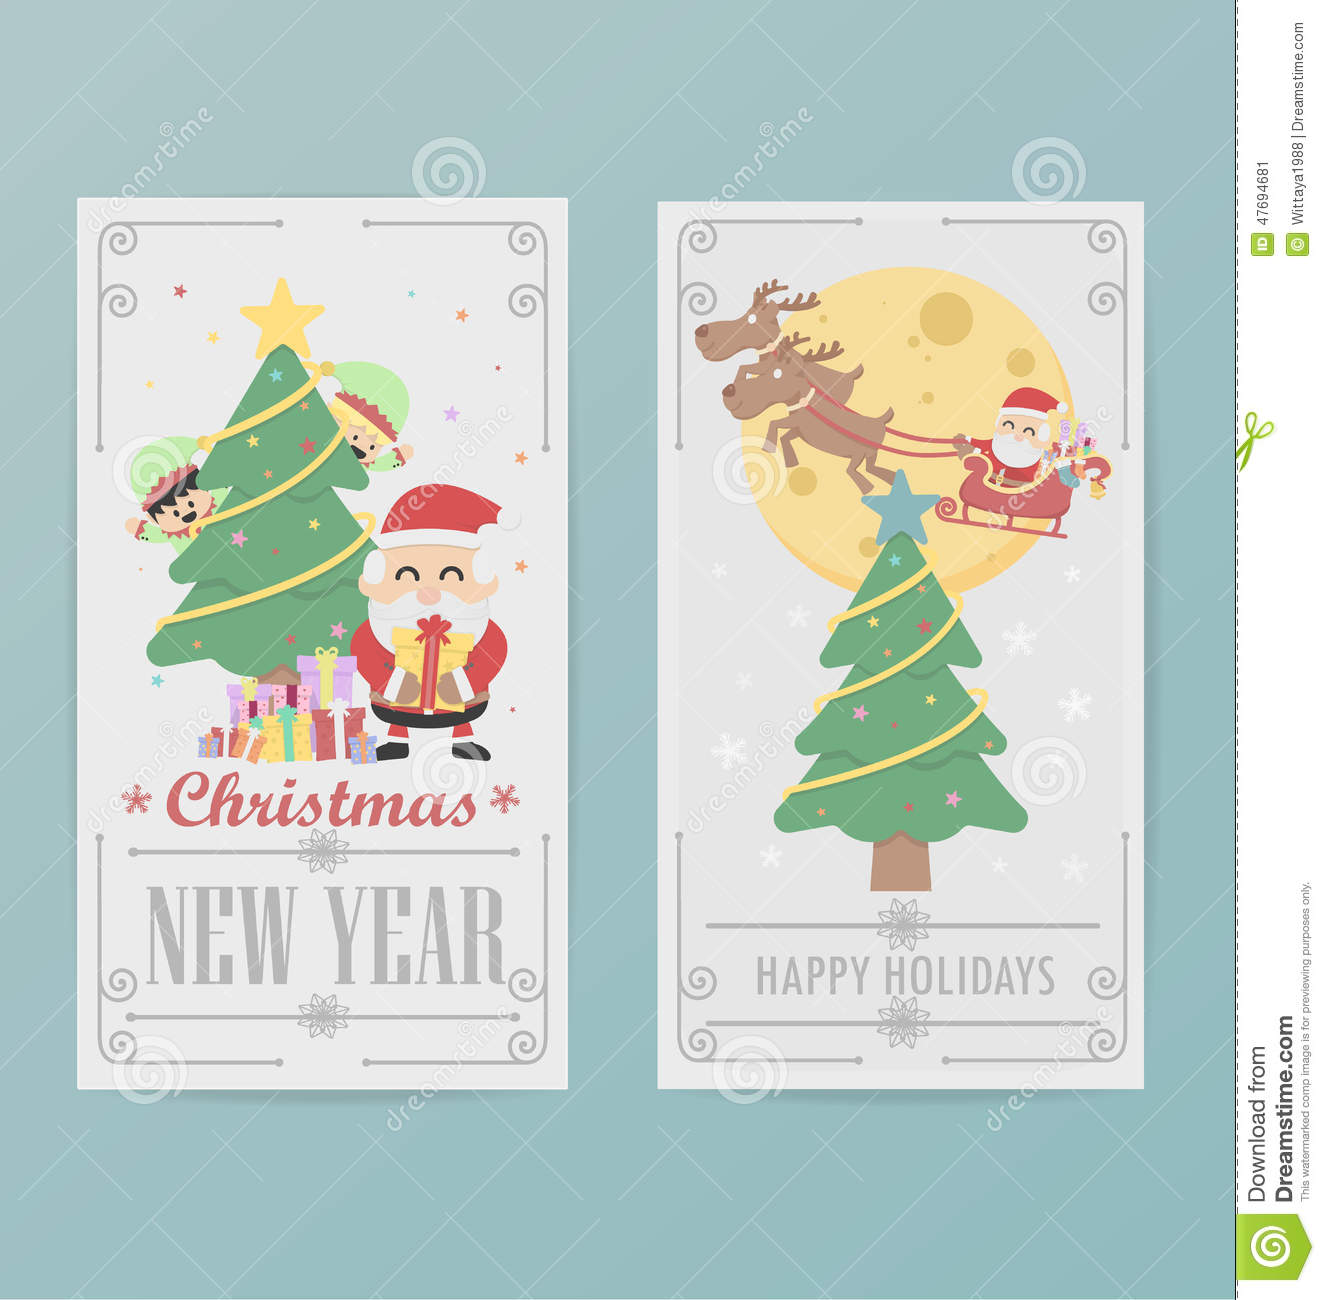 christmas card design layout template b - Christmas Card Layout